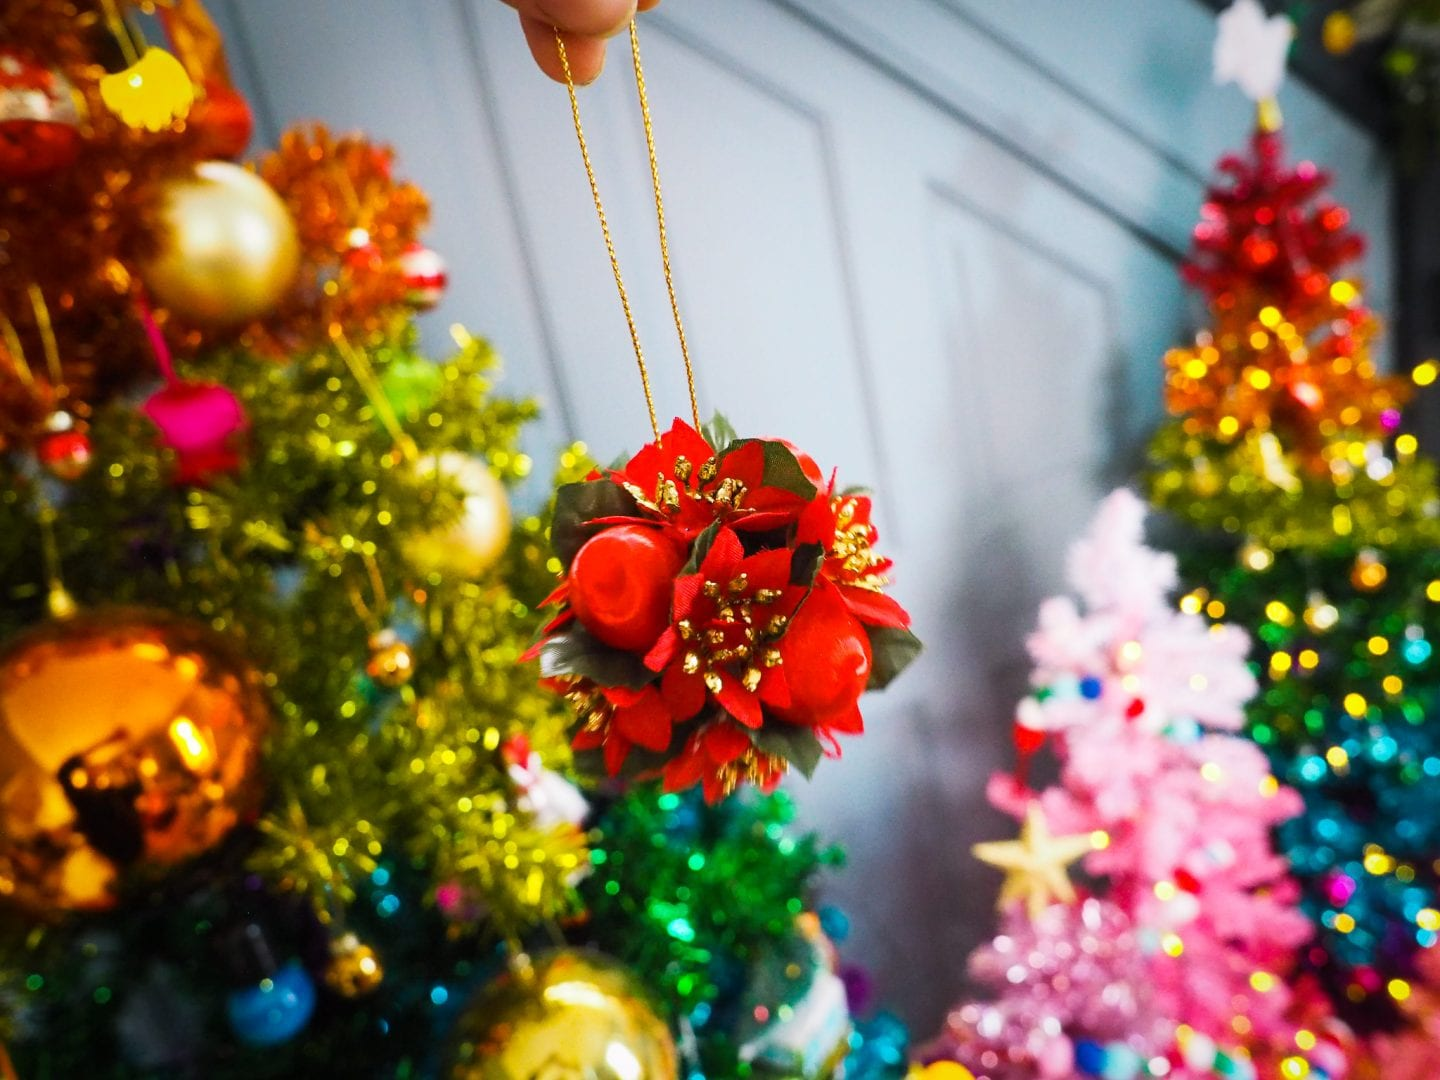 vintage-christmas-decorations-charity-shop-thrift-store-review-haul-red-flowers-3d